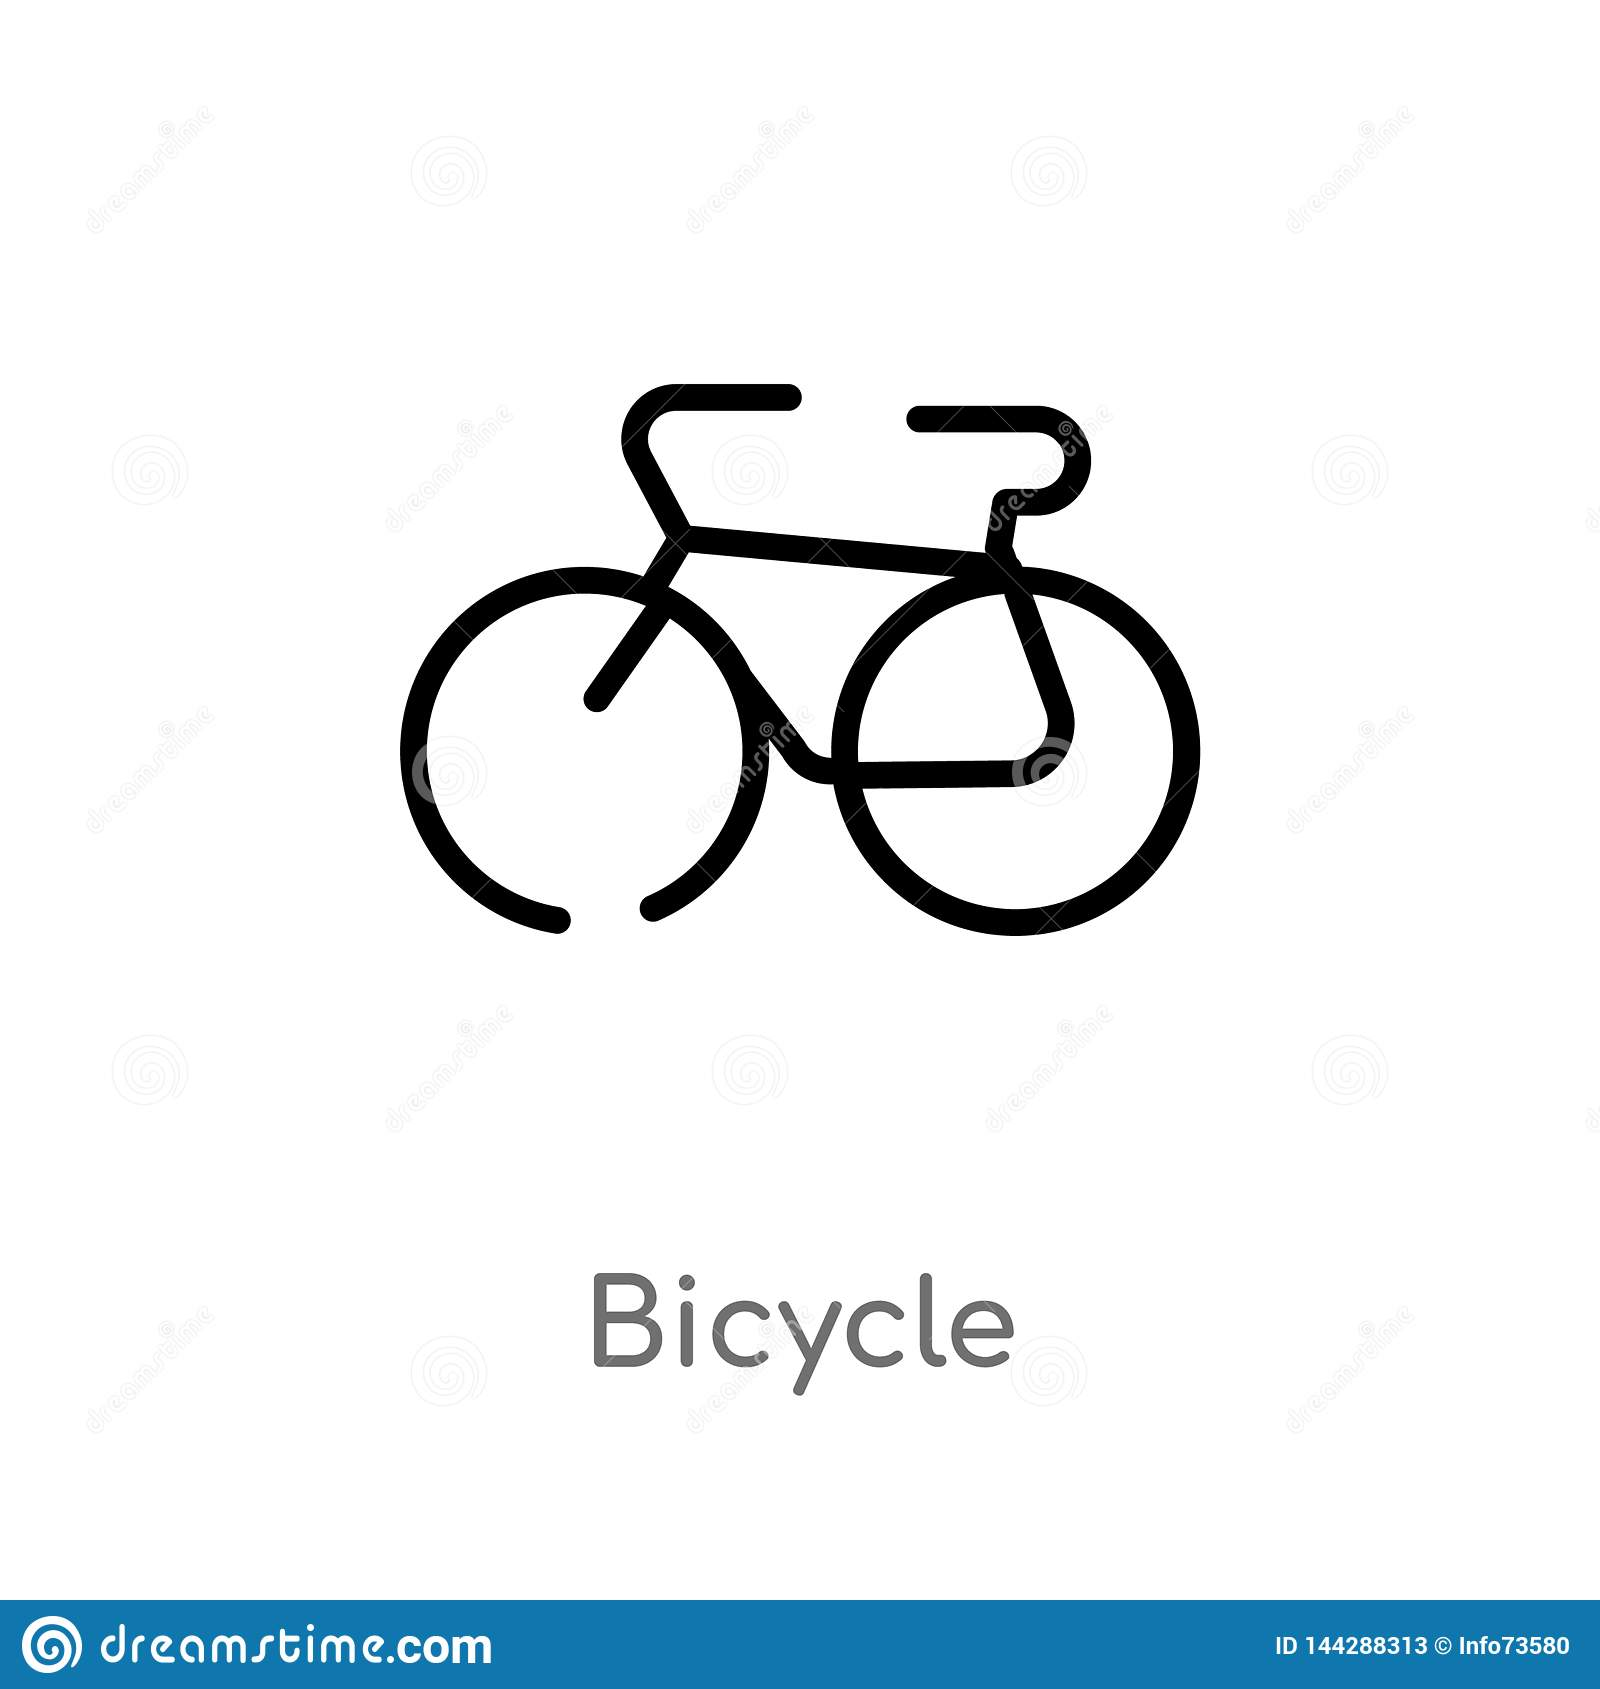 Outline Bicycle Vector Icon  Isolated Black Simple Line Element